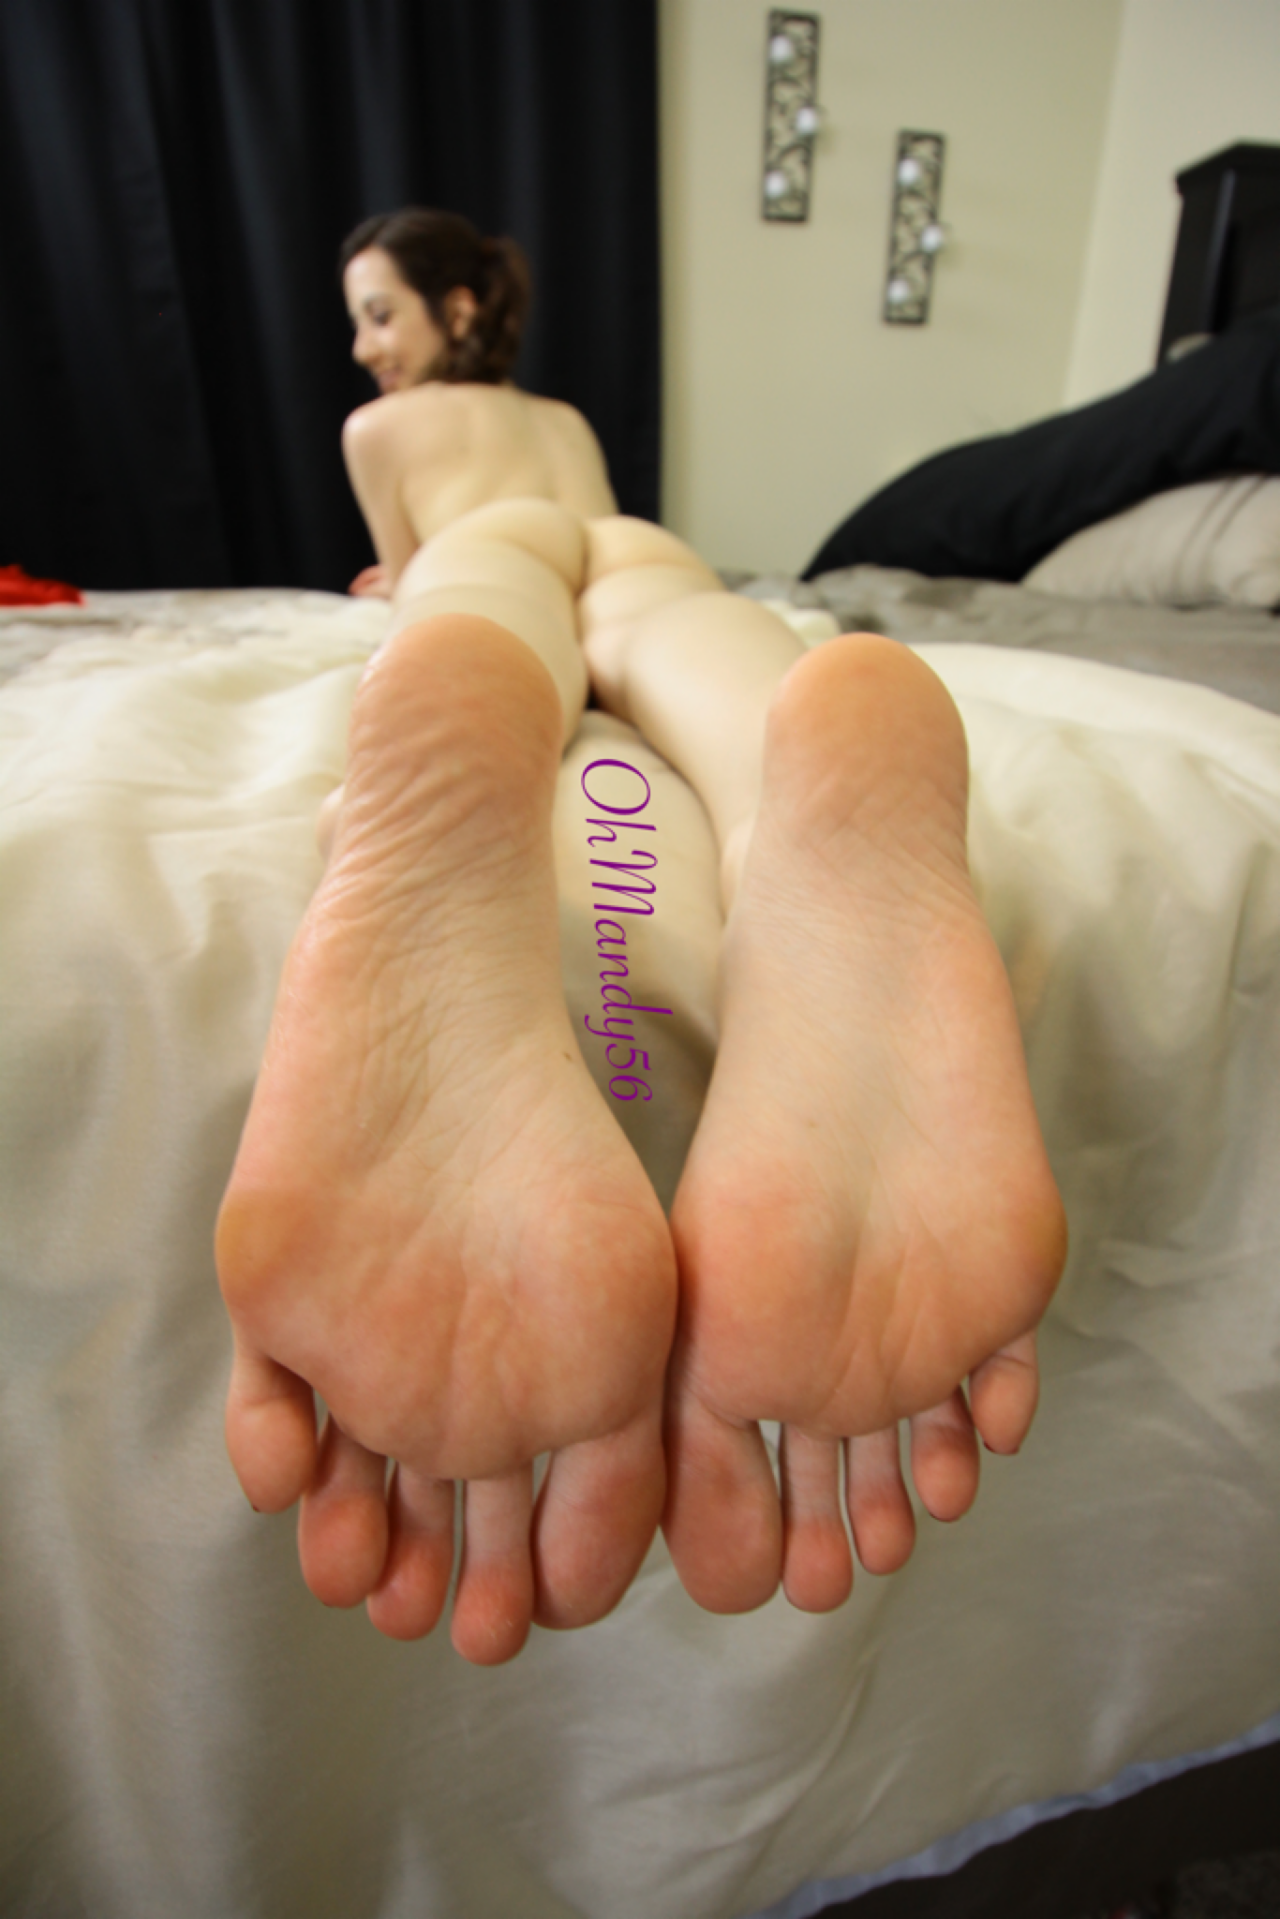 Feet Jo Parker nudes (69 foto and video), Sexy, Cleavage, Instagram, butt 2020